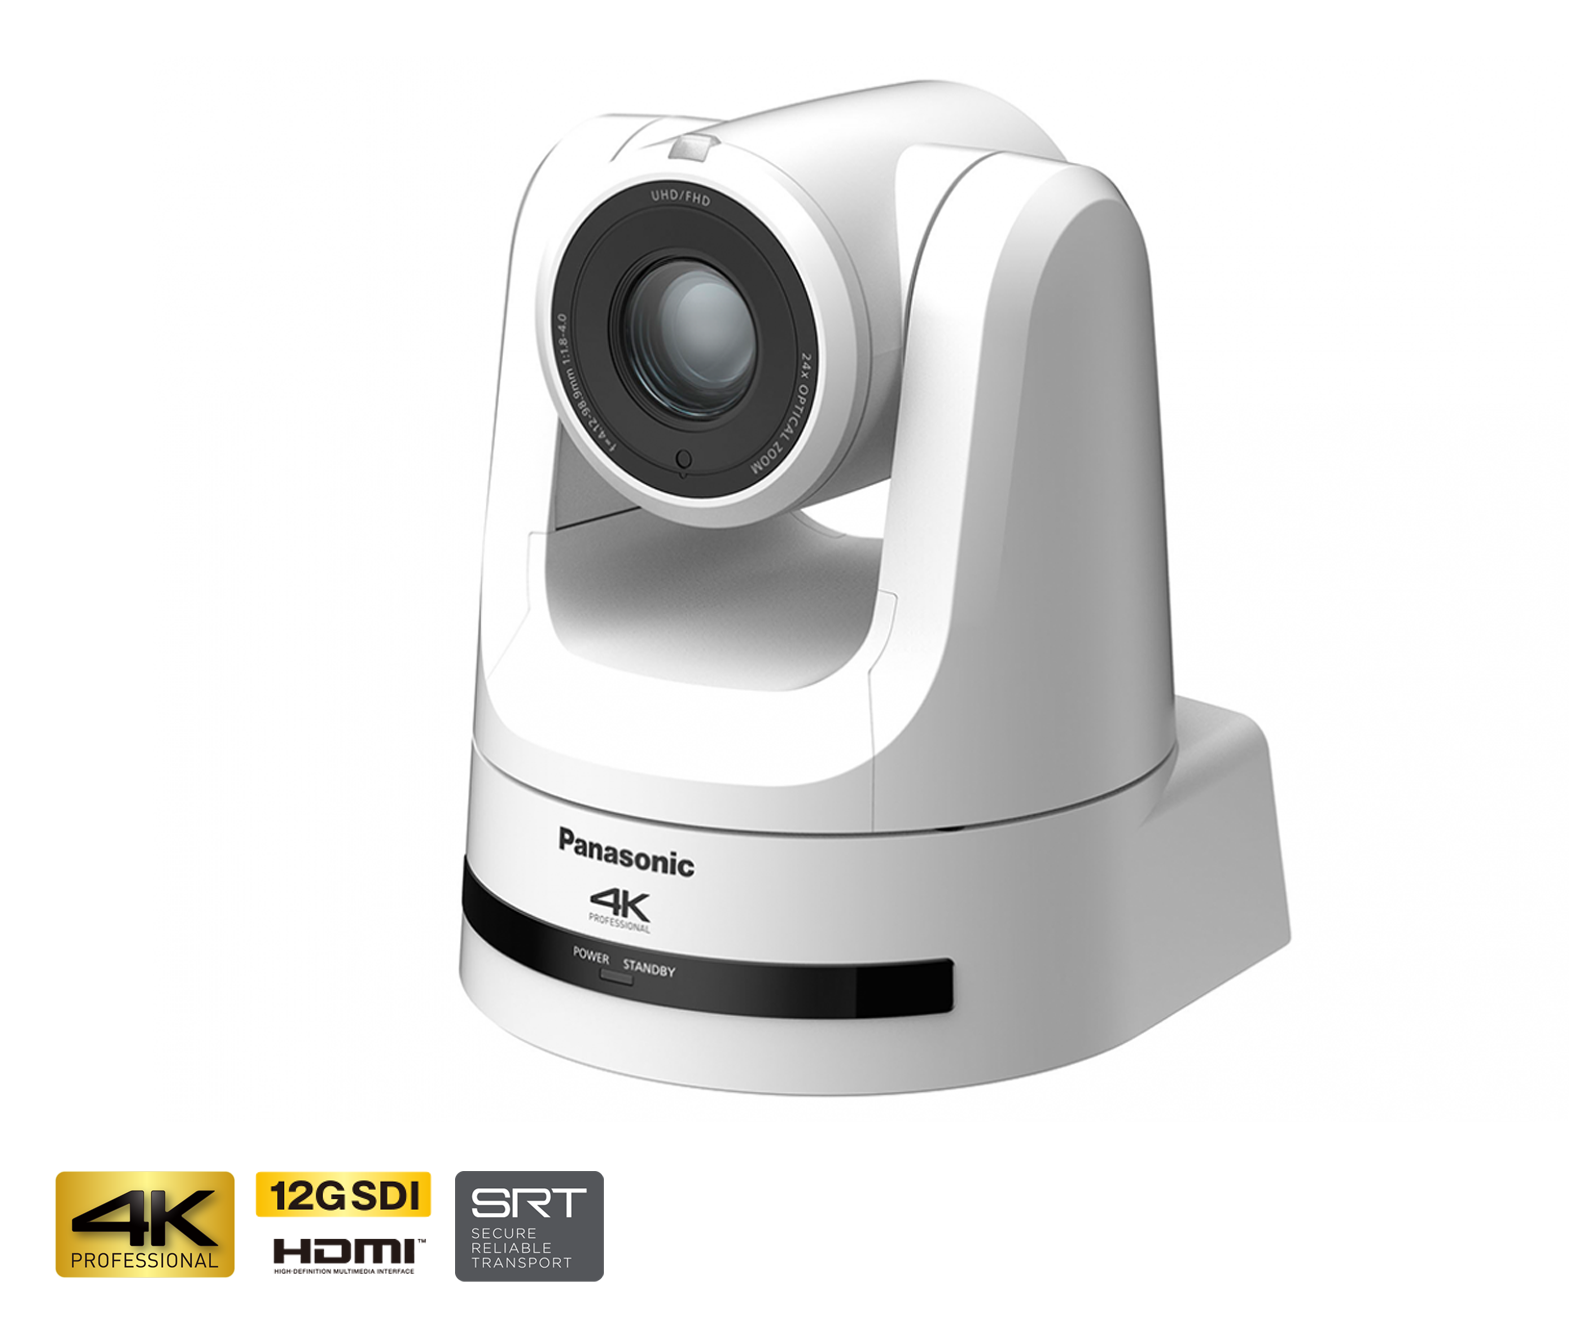 Panasonic AW-UE100 4K NDI Professional PTZ Camera (White)